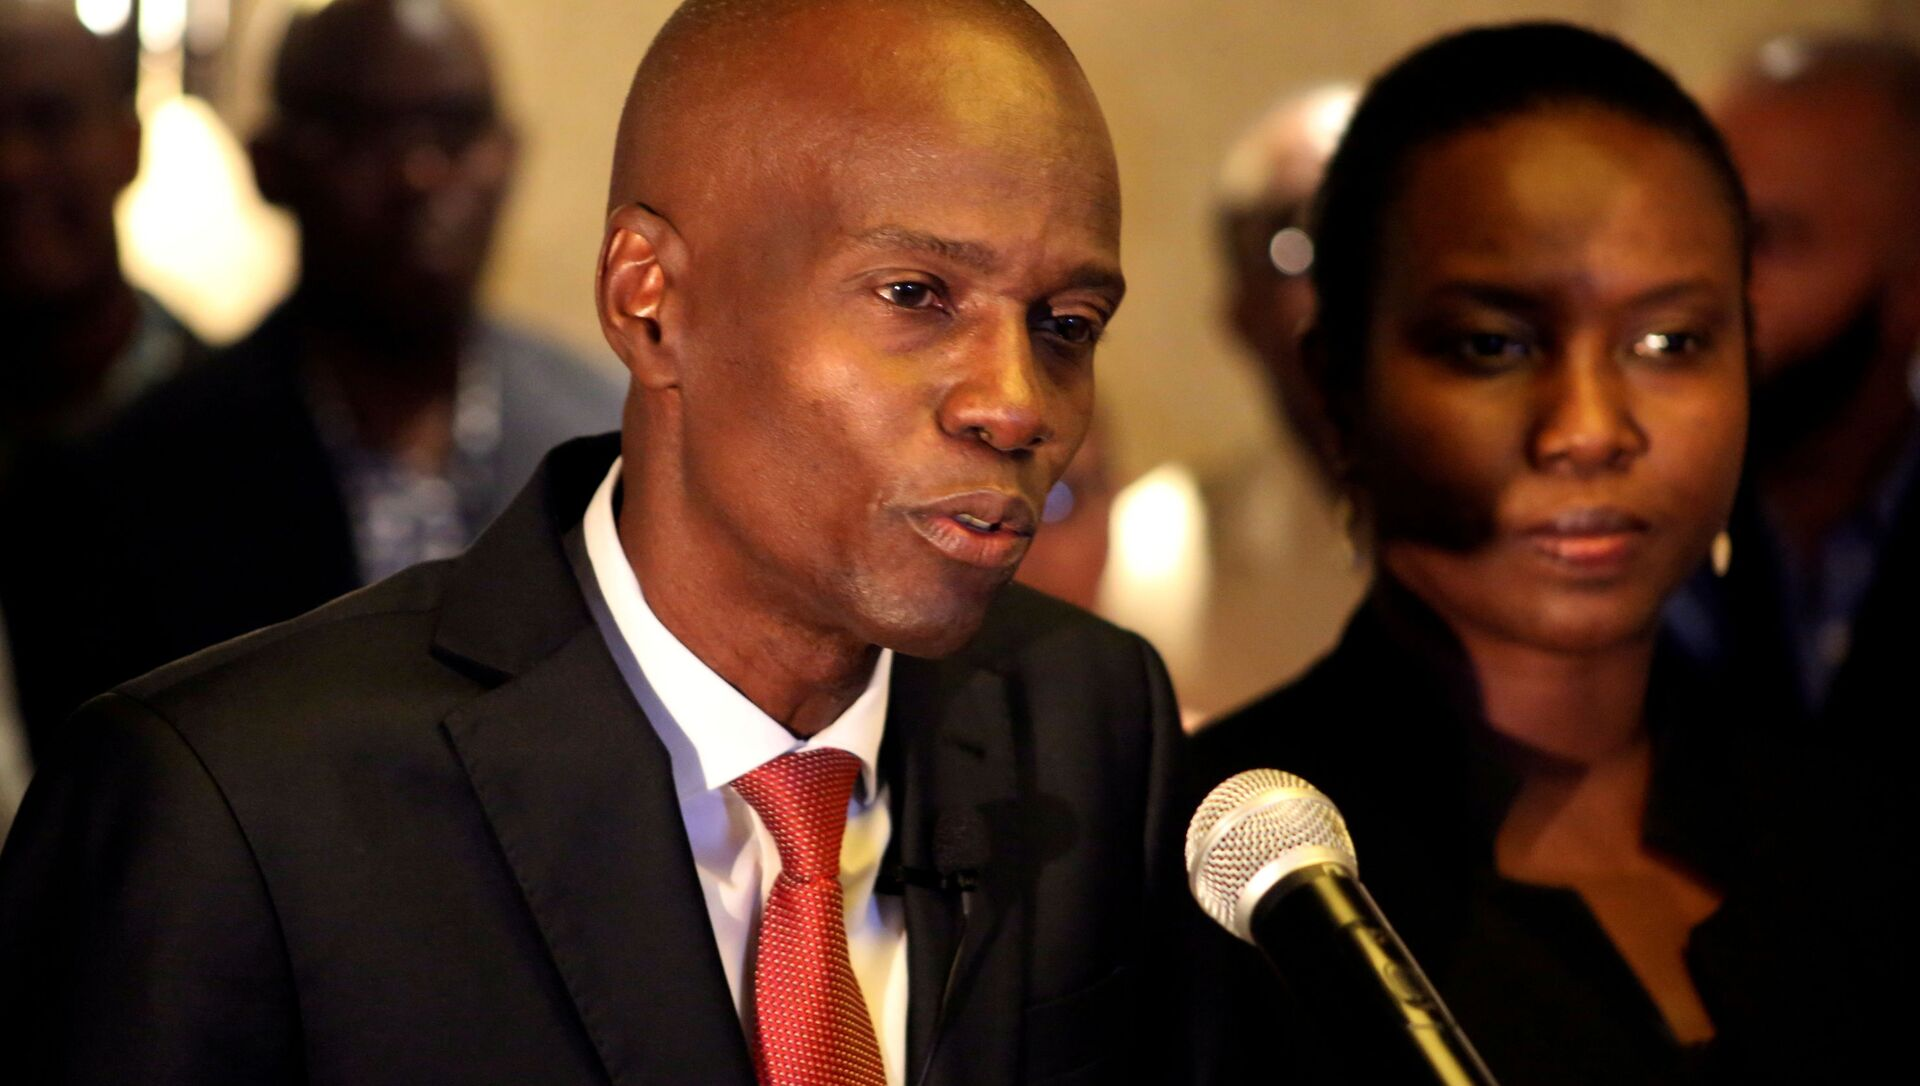 FILE PHOTO: Jovenel Moise addresses the media next to his wife Martine after winning the 2016 presidential election, in Port-au-Prince, Haiti. Picture taken 28 November 2016 - Sputnik International, 1920, 03.08.2021